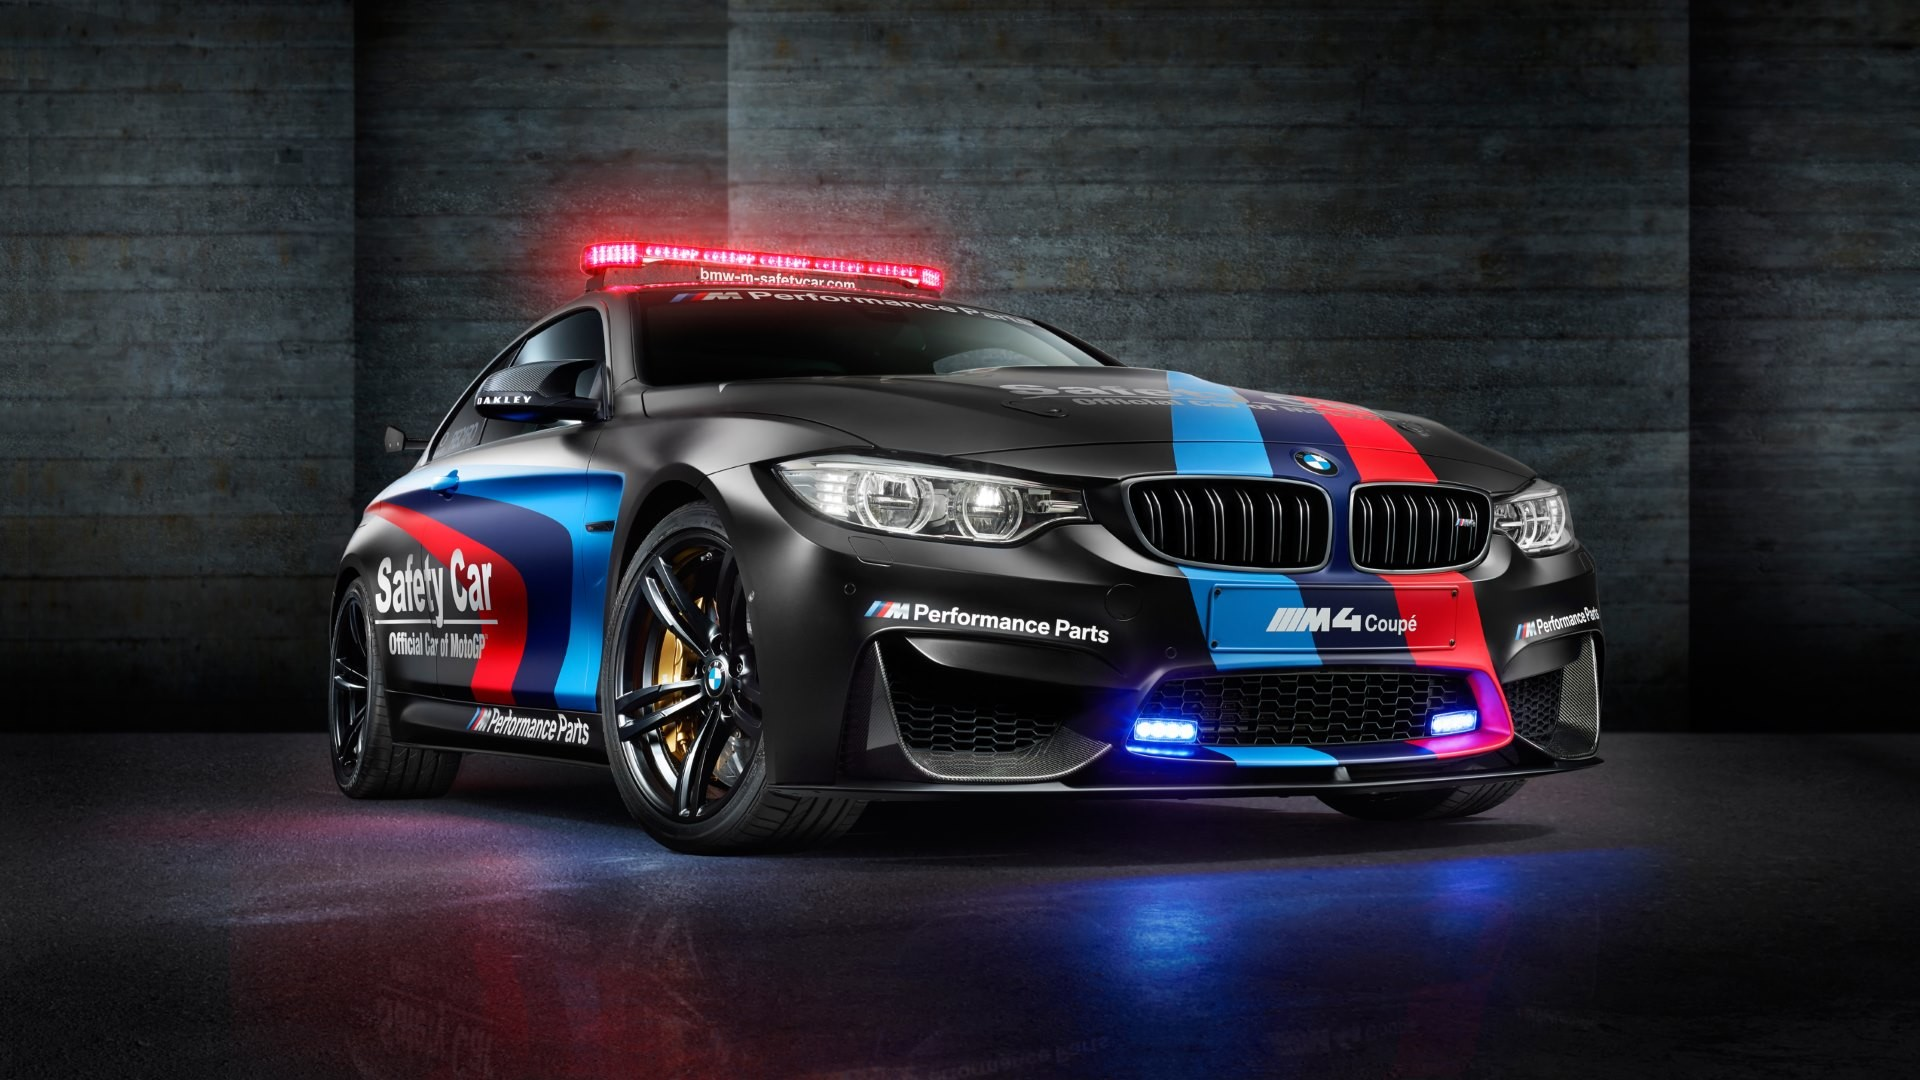 1920x1080 BMW M - Official Car of MotoGP HD Wallpapers. 4K Wallpapers